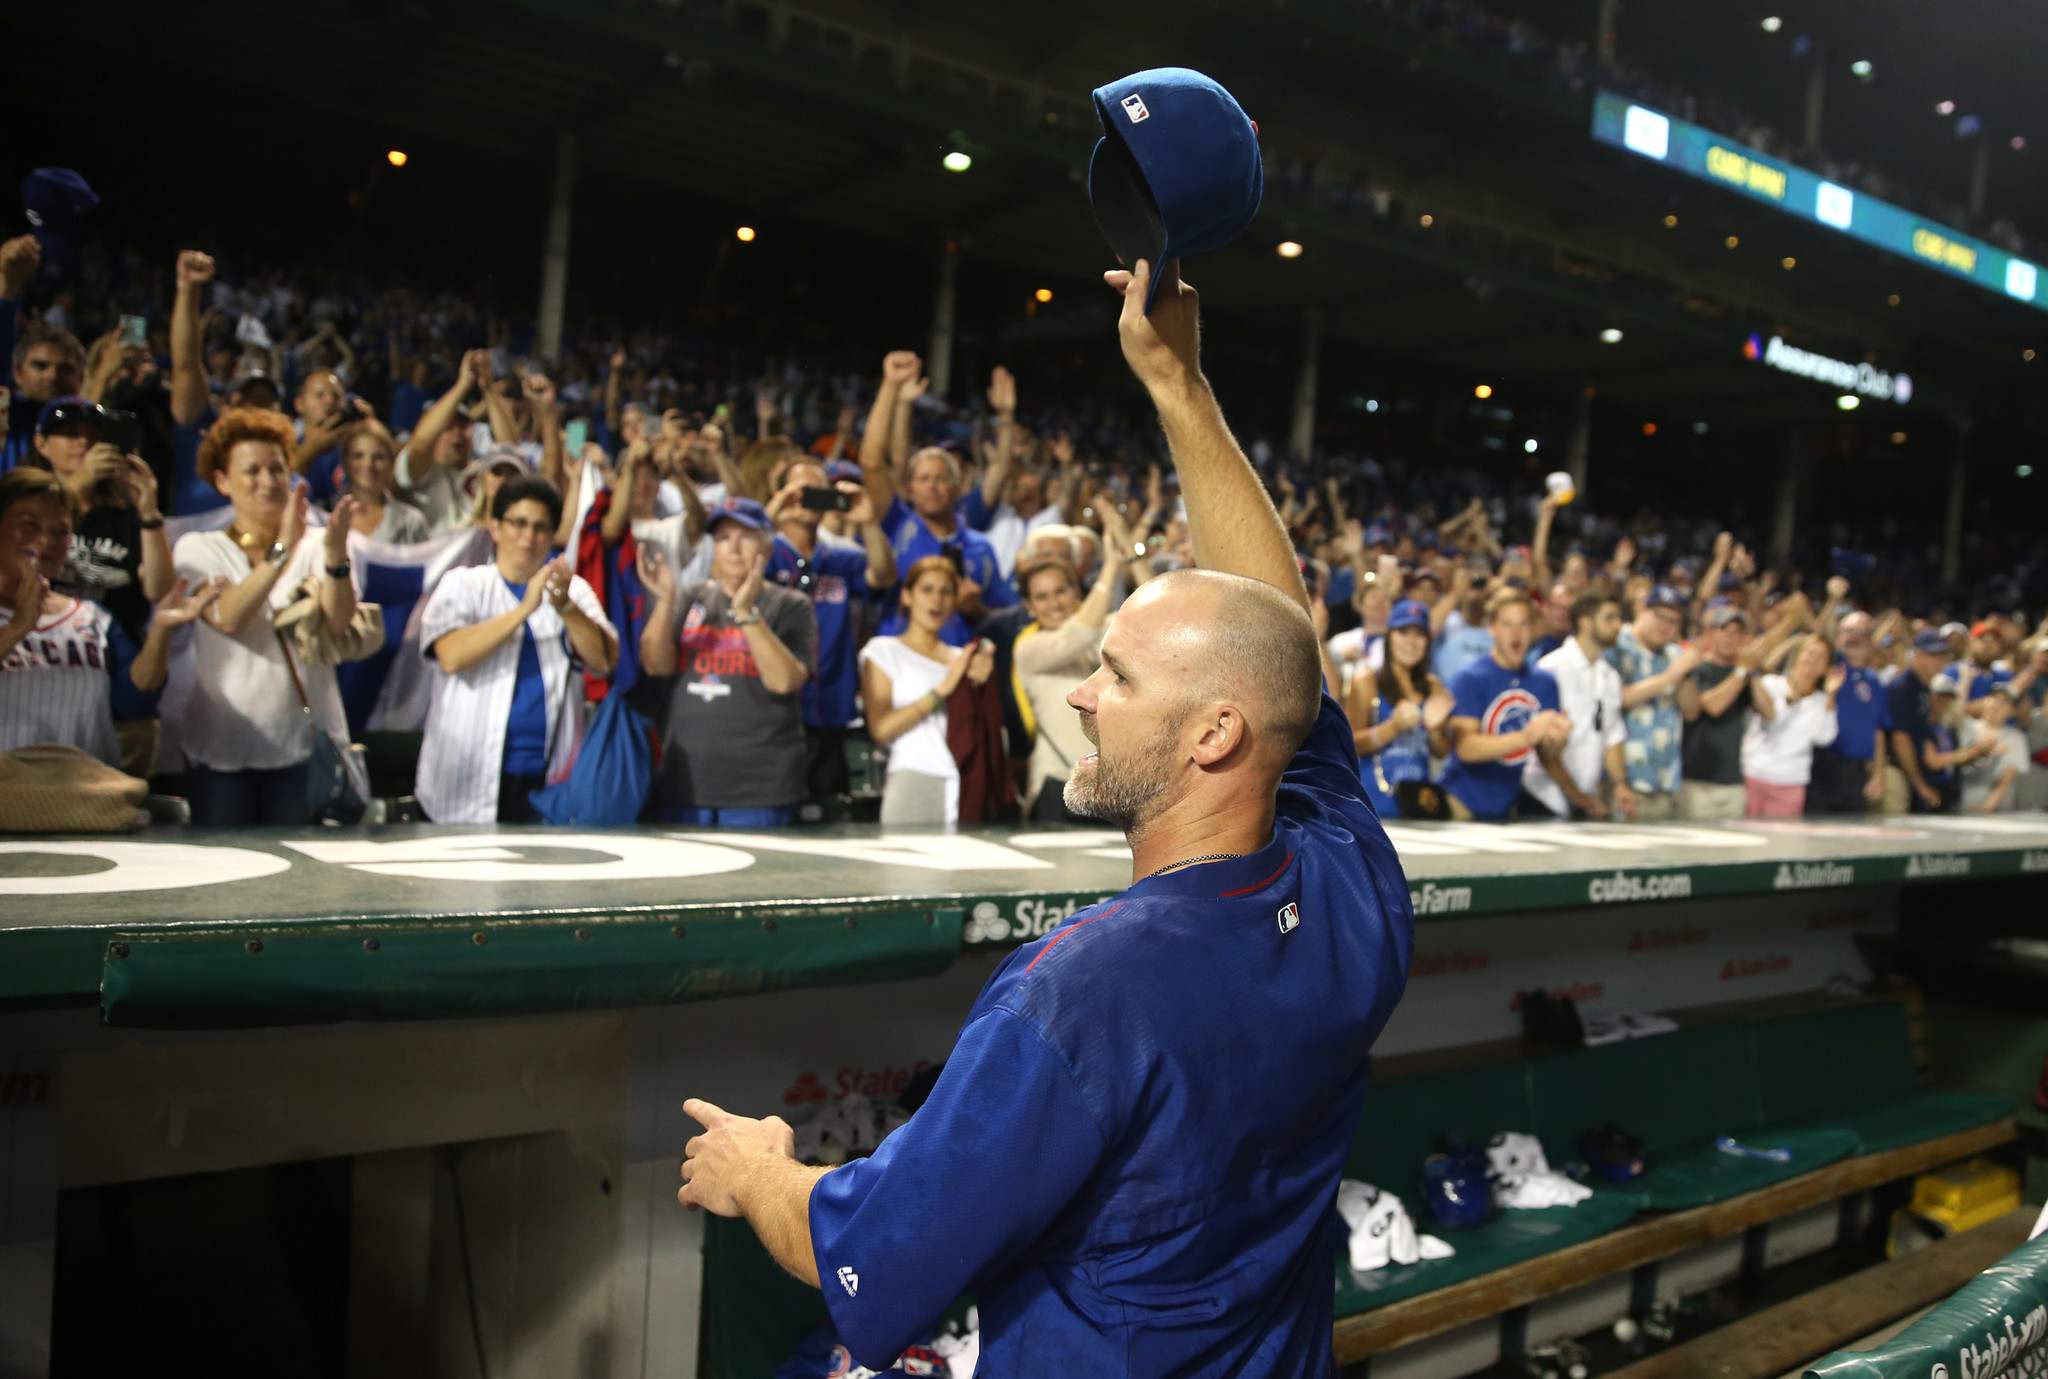 David Ross on emotional Sunday at Wrigley: 'I'm such a crybaby'